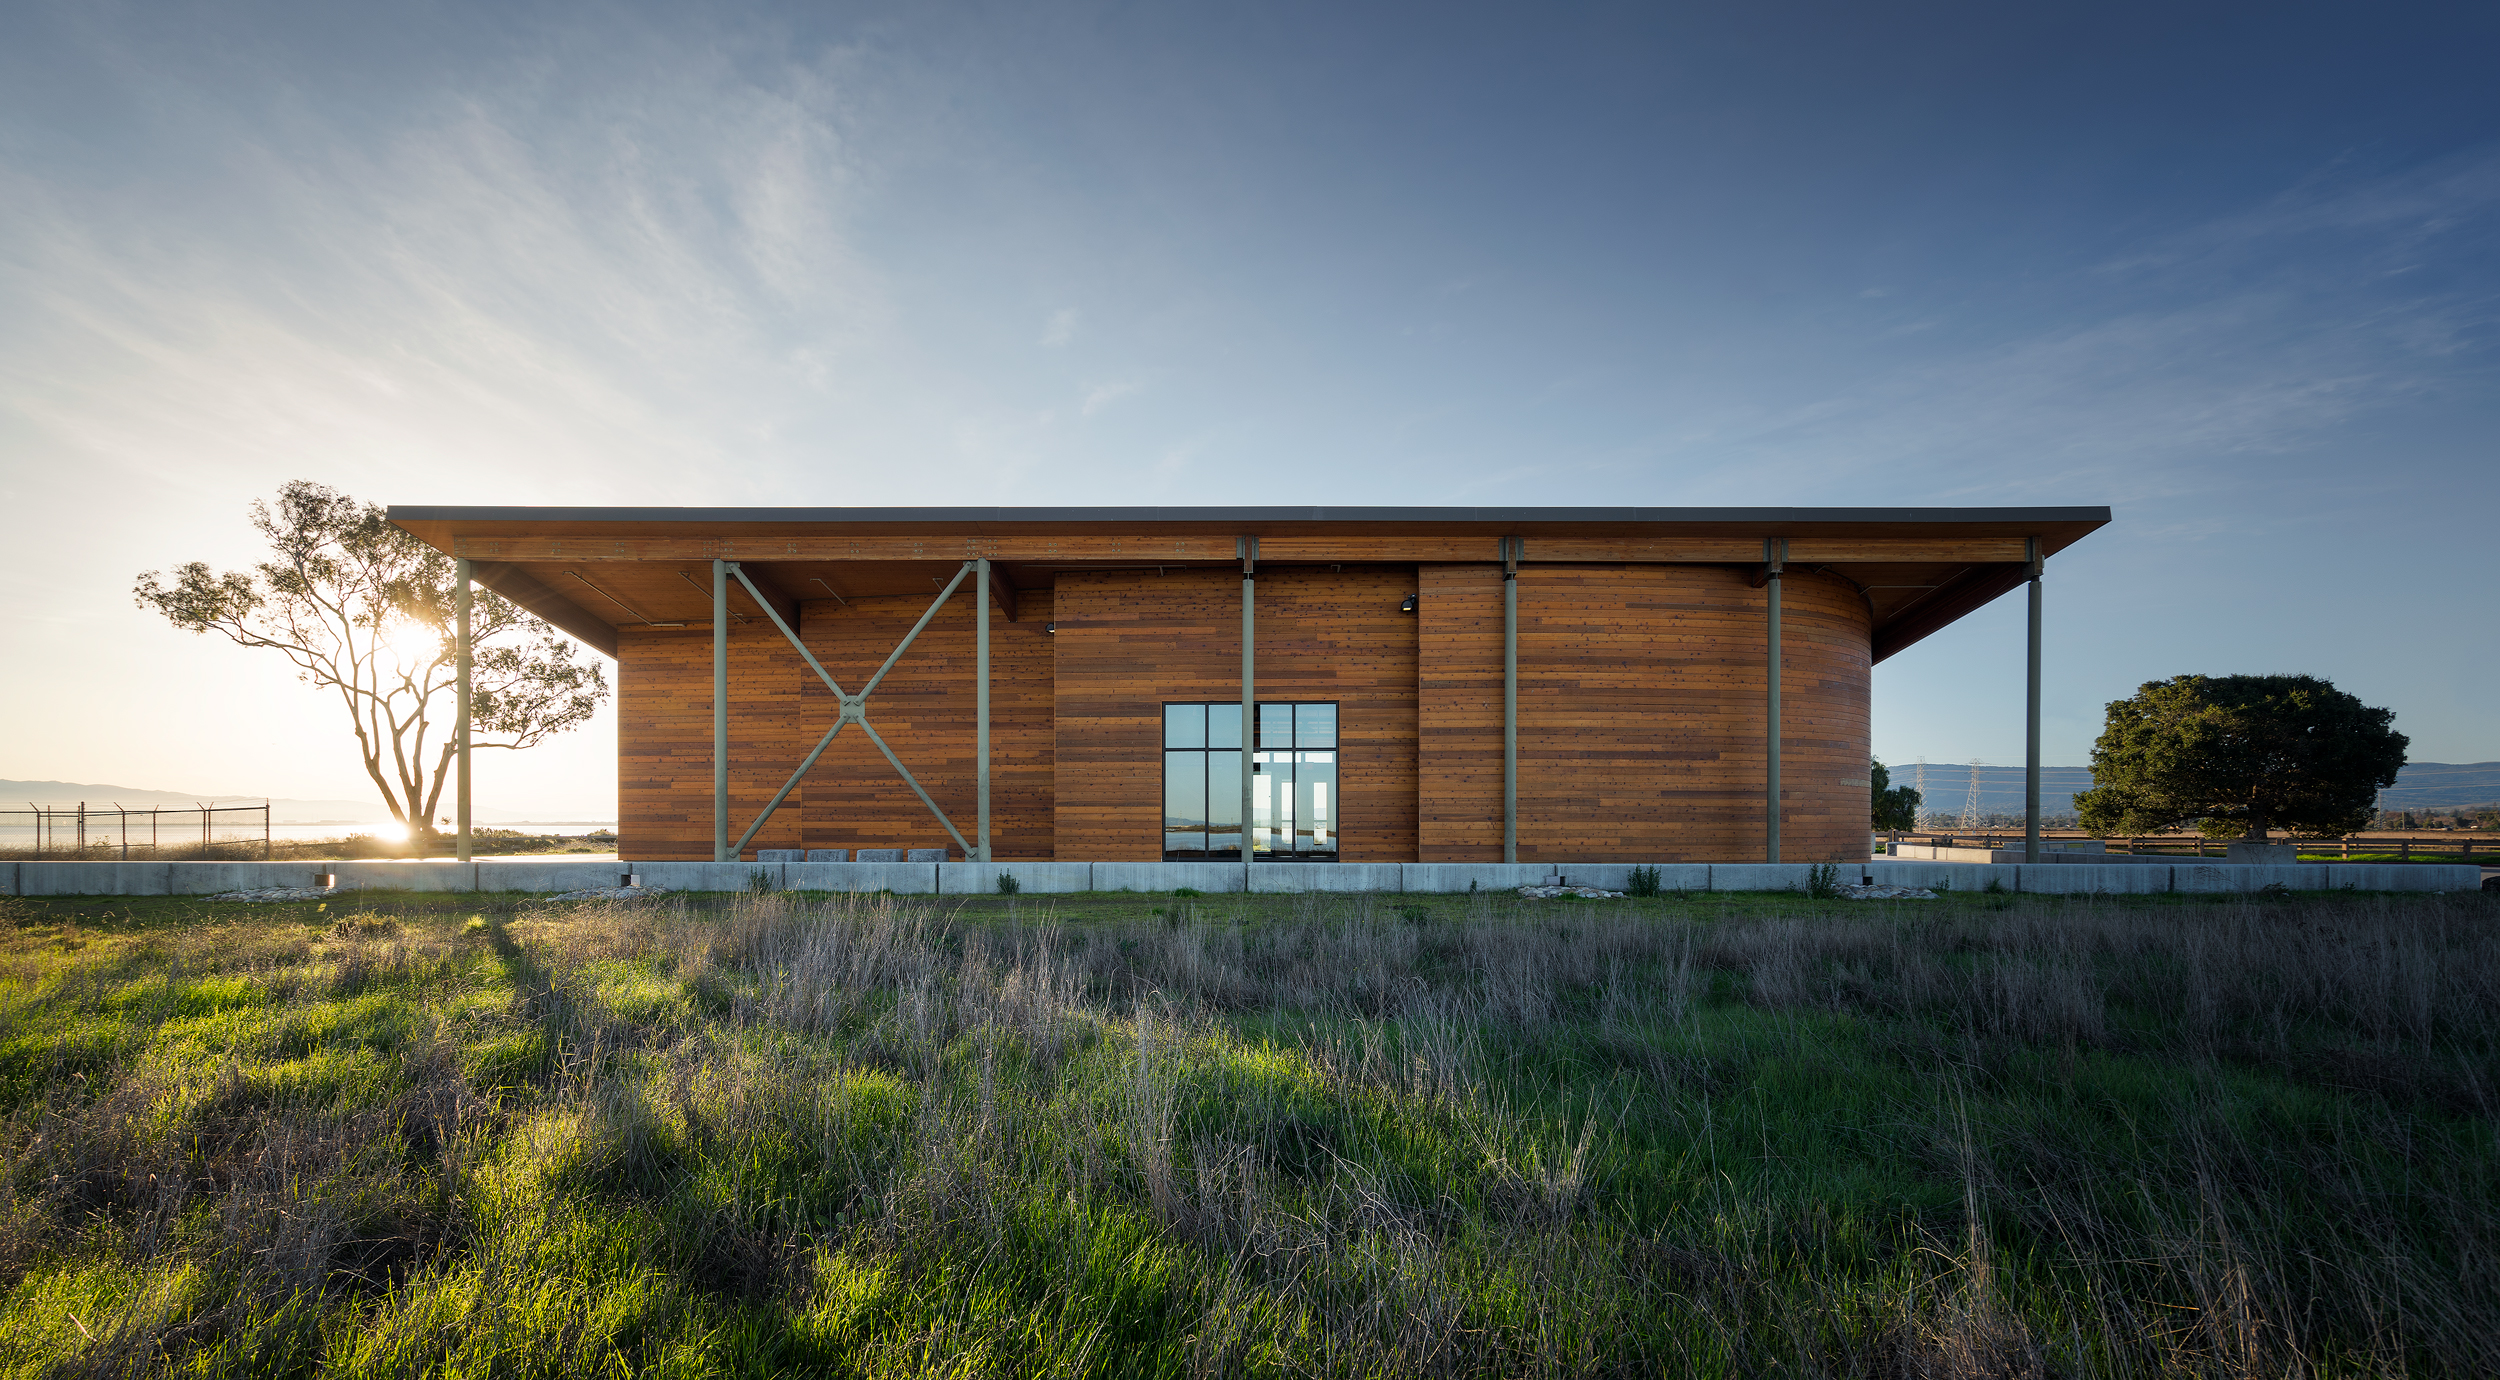 Cooley Landing Educational Center- FOG Studio Architects